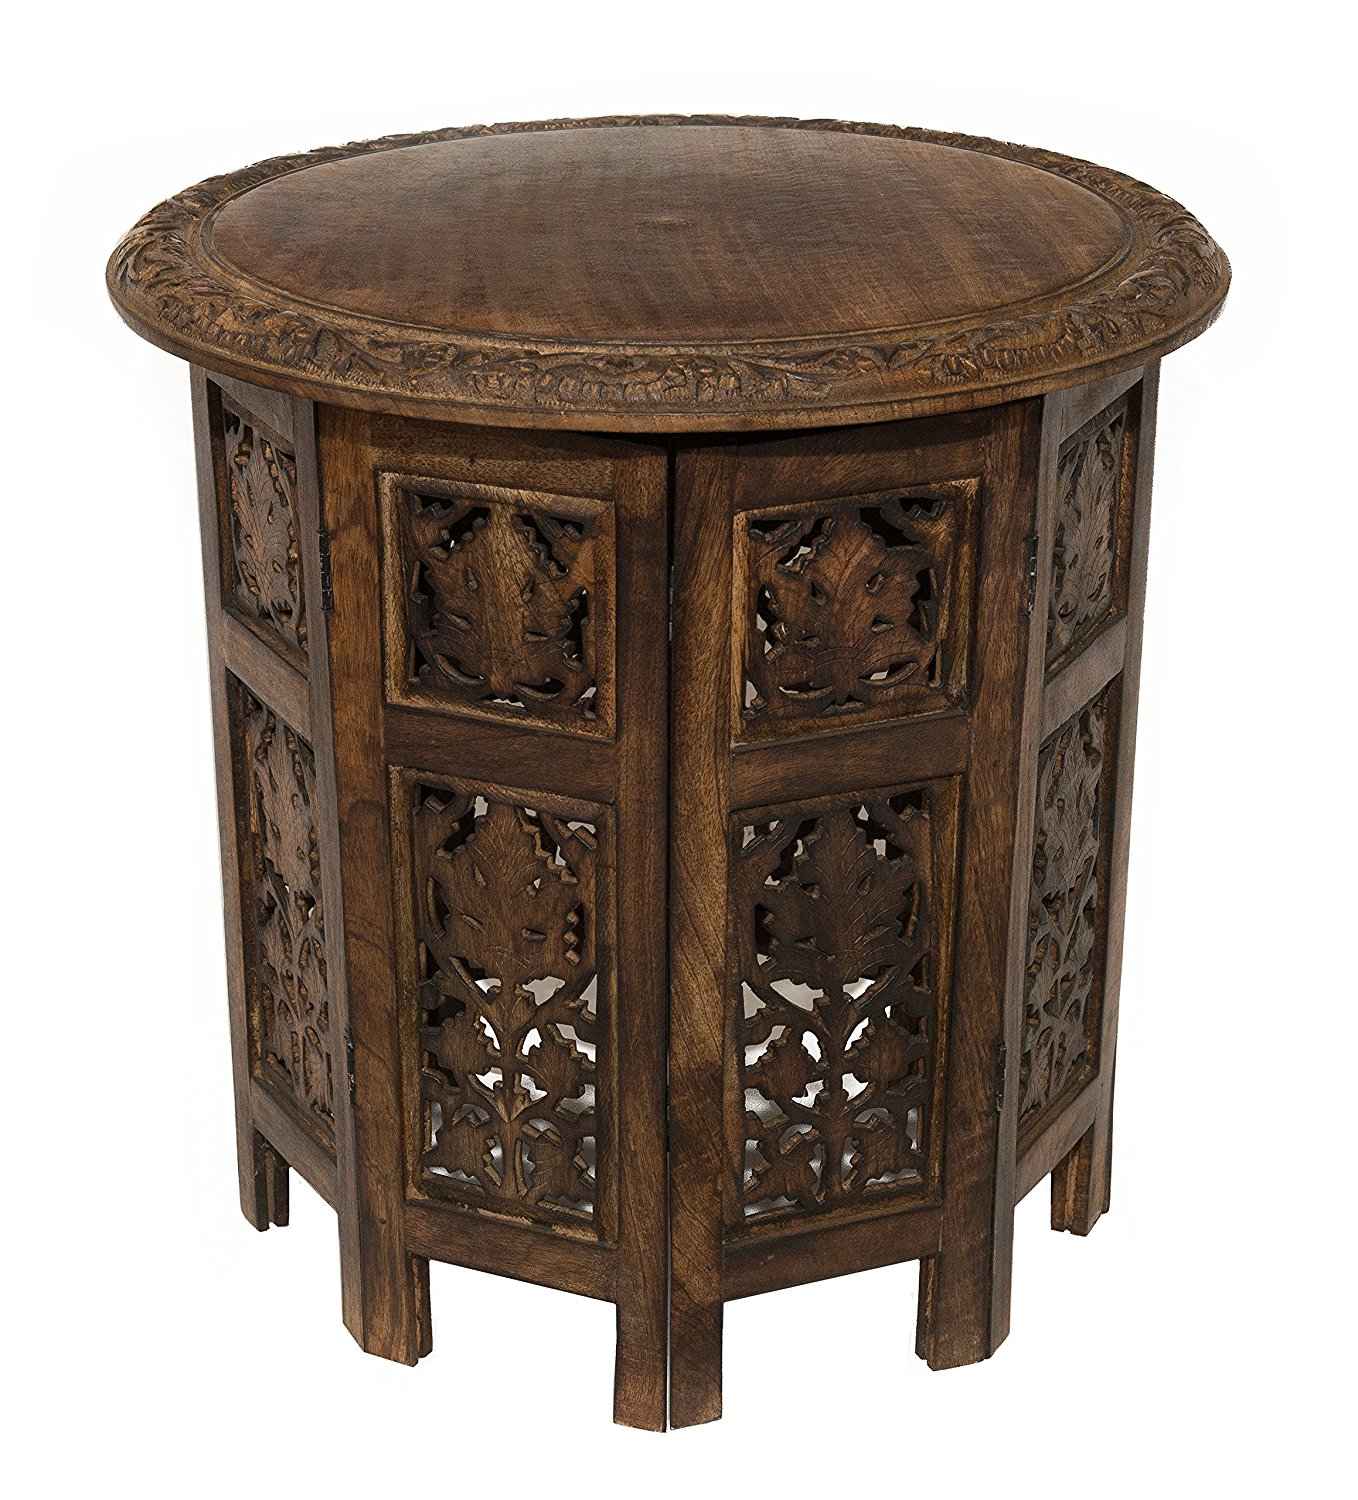 enchanting small round wood end table home tapered replac inch wooden toppers top metal glass garden and white base screw replacement chairs pub dining depot unfinished tops legs